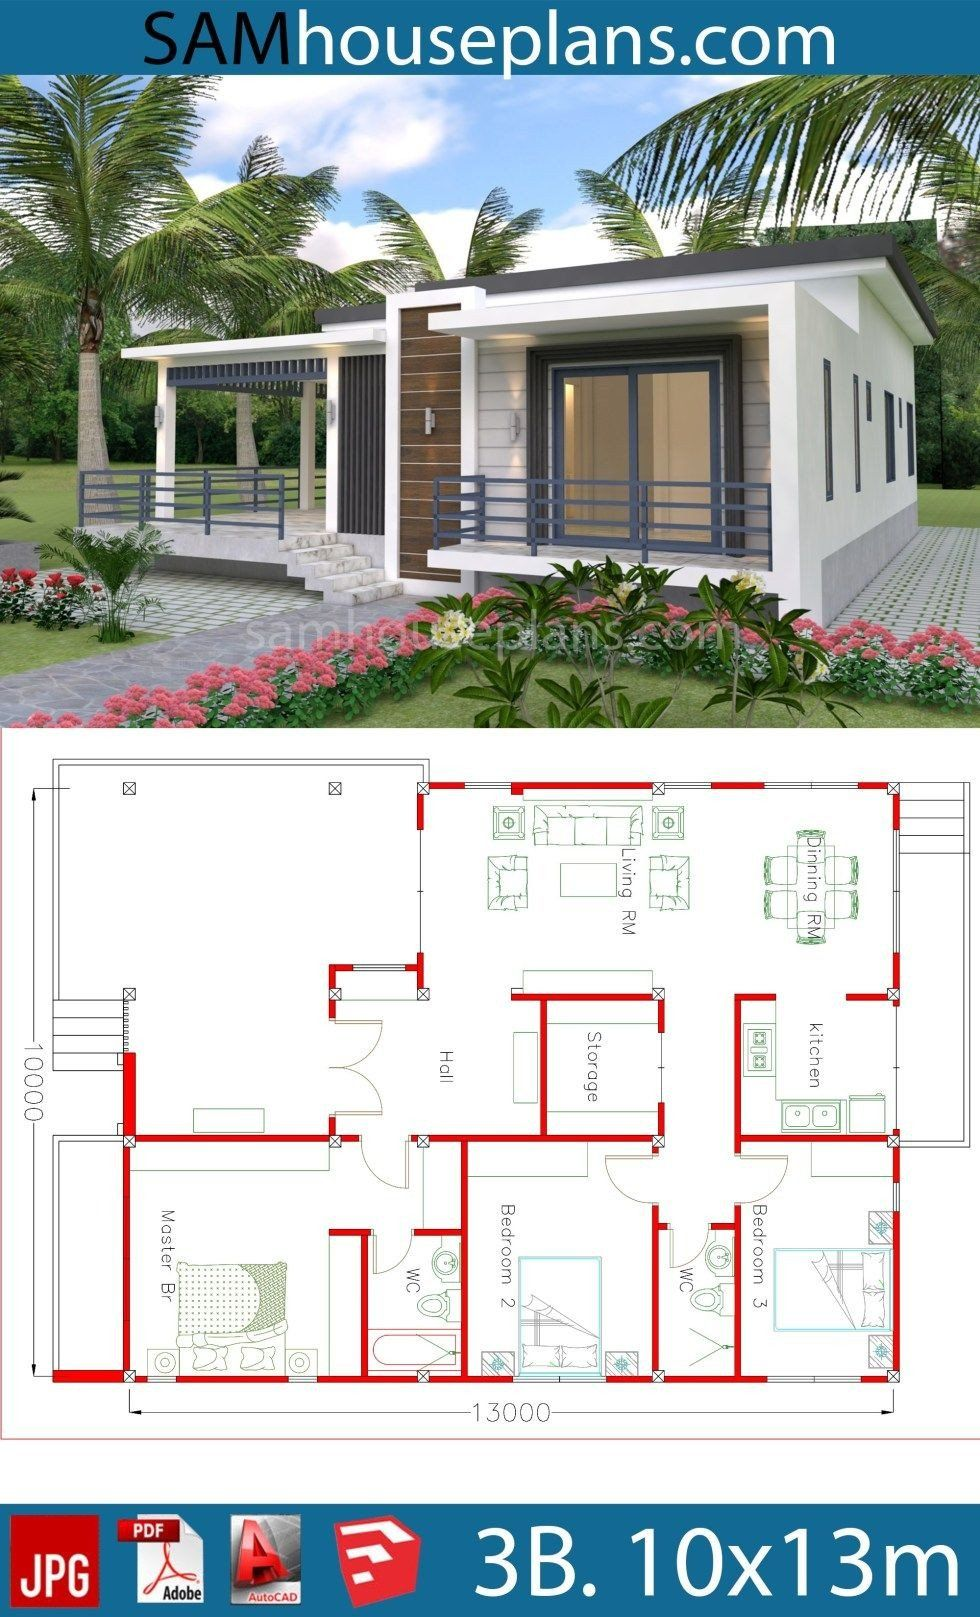 Modern House Plans Cost To Build House Plans 10x13m With 3 Bedrooms In 2020 Affordable House Plans Beautiful House Plans Vacation House Plans